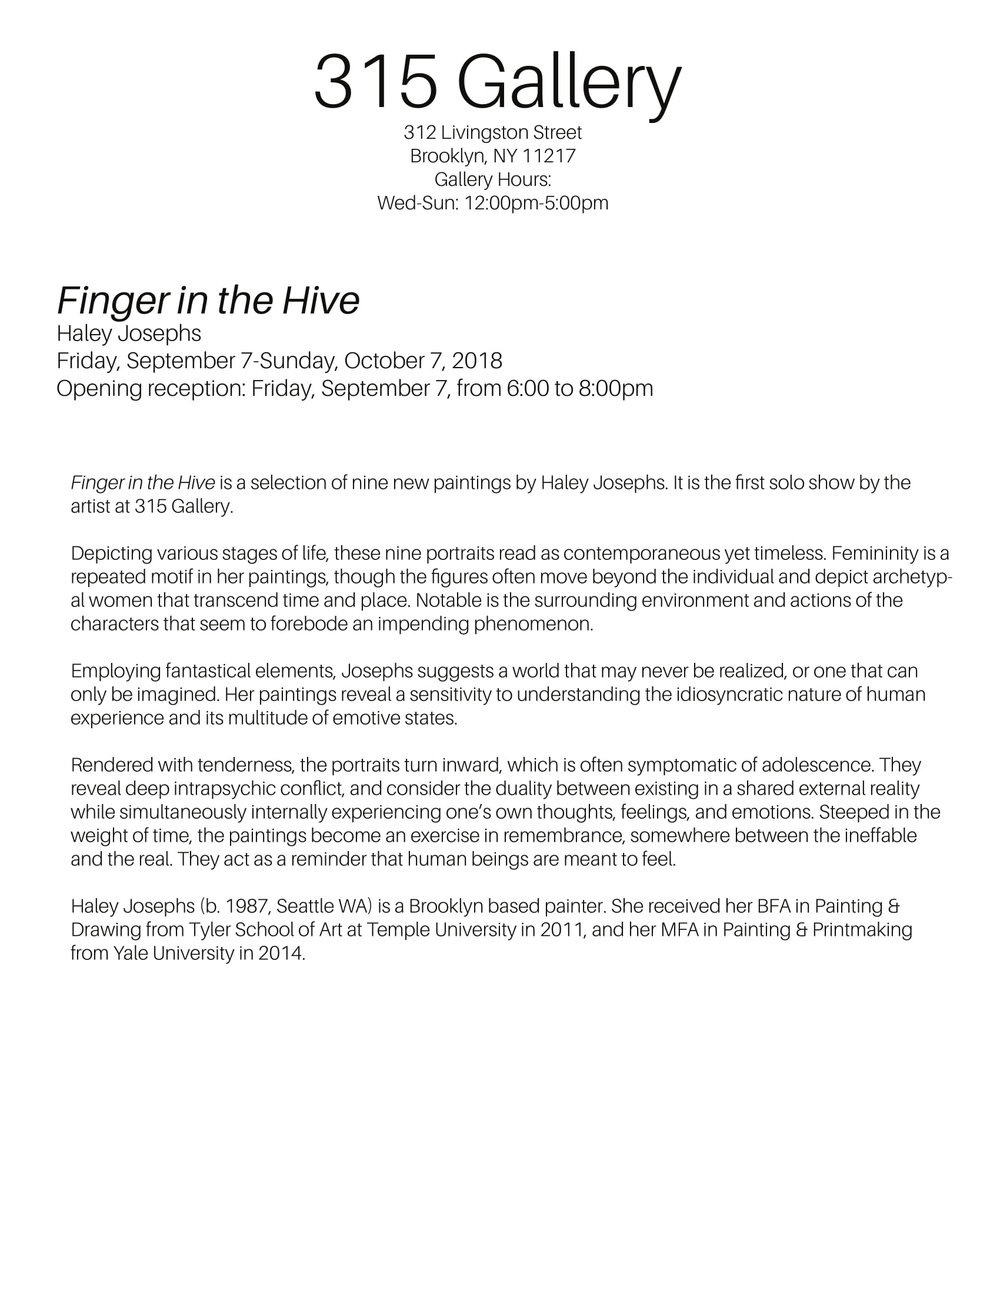 Finger in the Hive PR-1.jpg